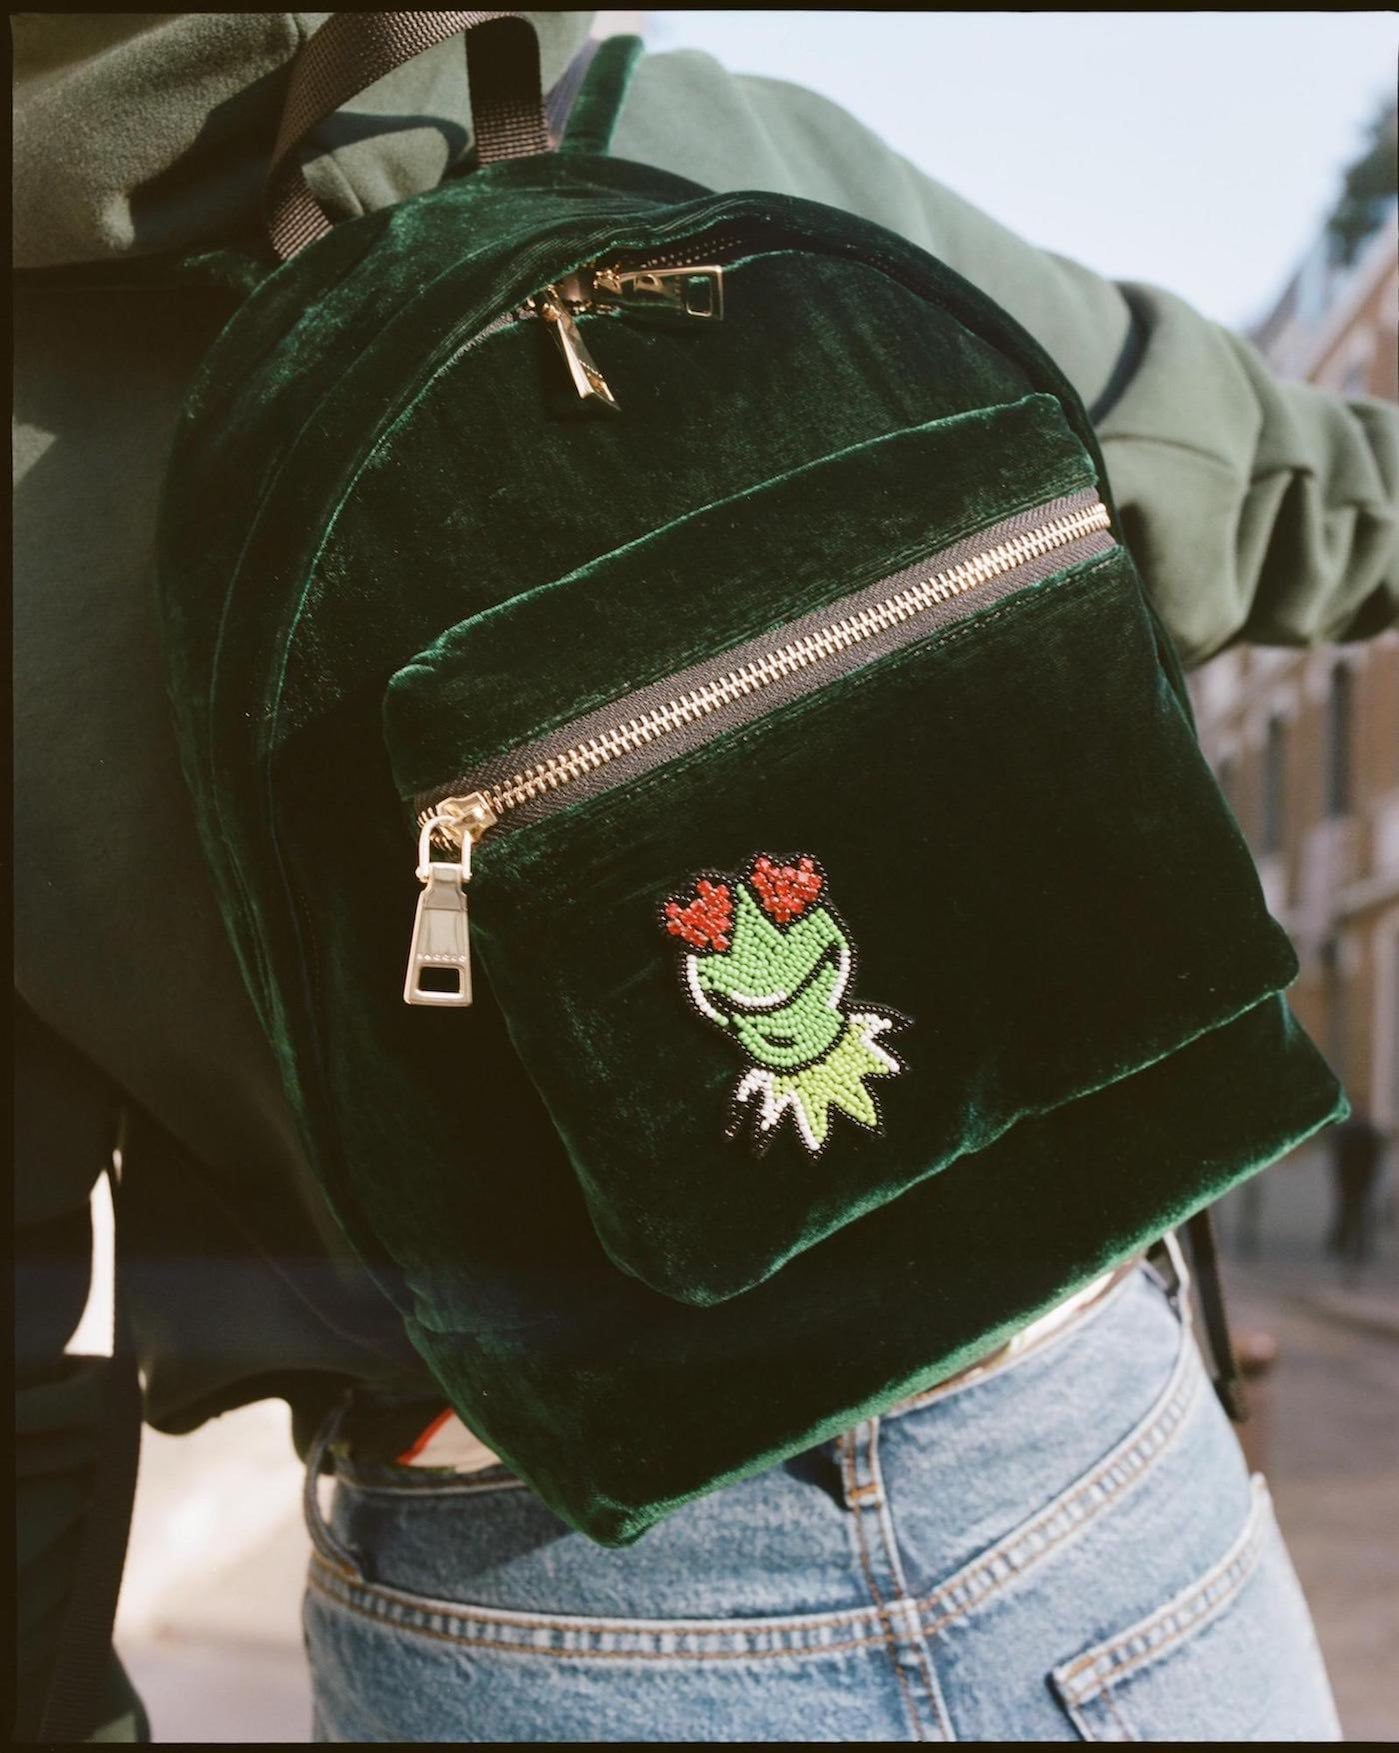 Model wearing a velvety green back pack featuring Kermit from the Sandro collection